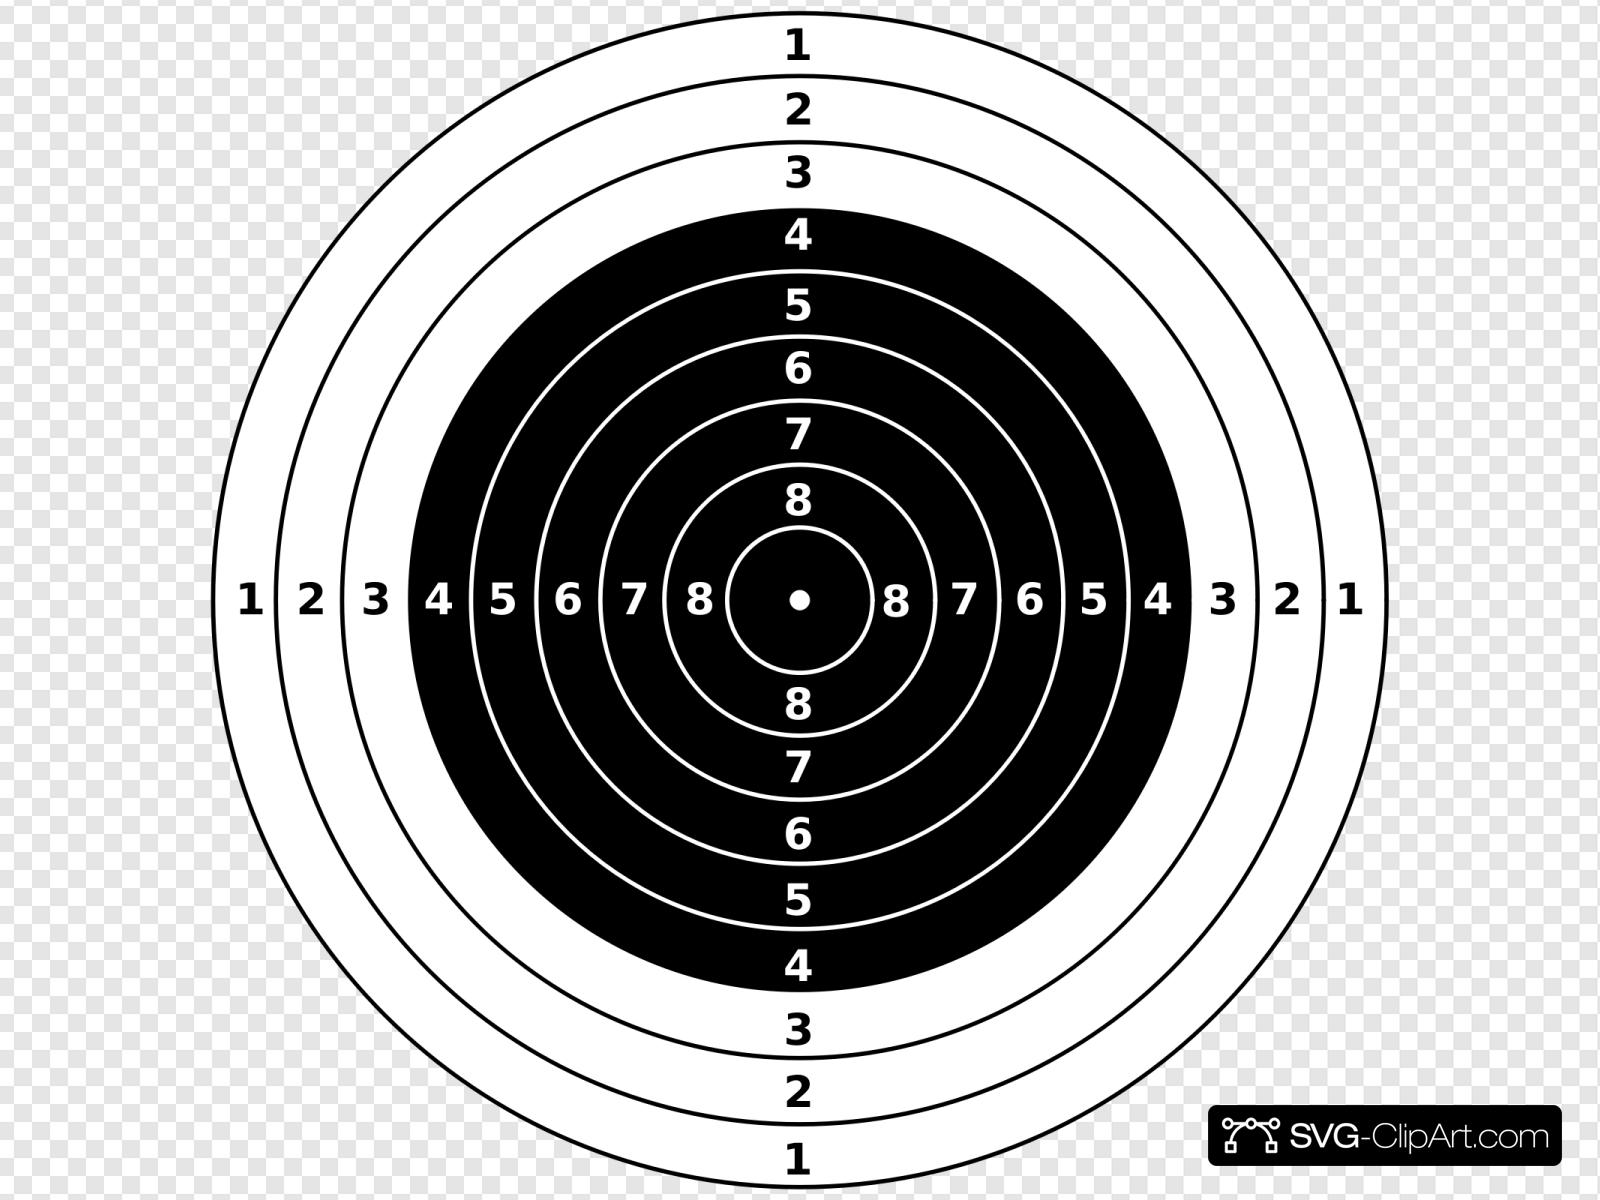 M Air Rifle Target Clip art, Icon and SVG.